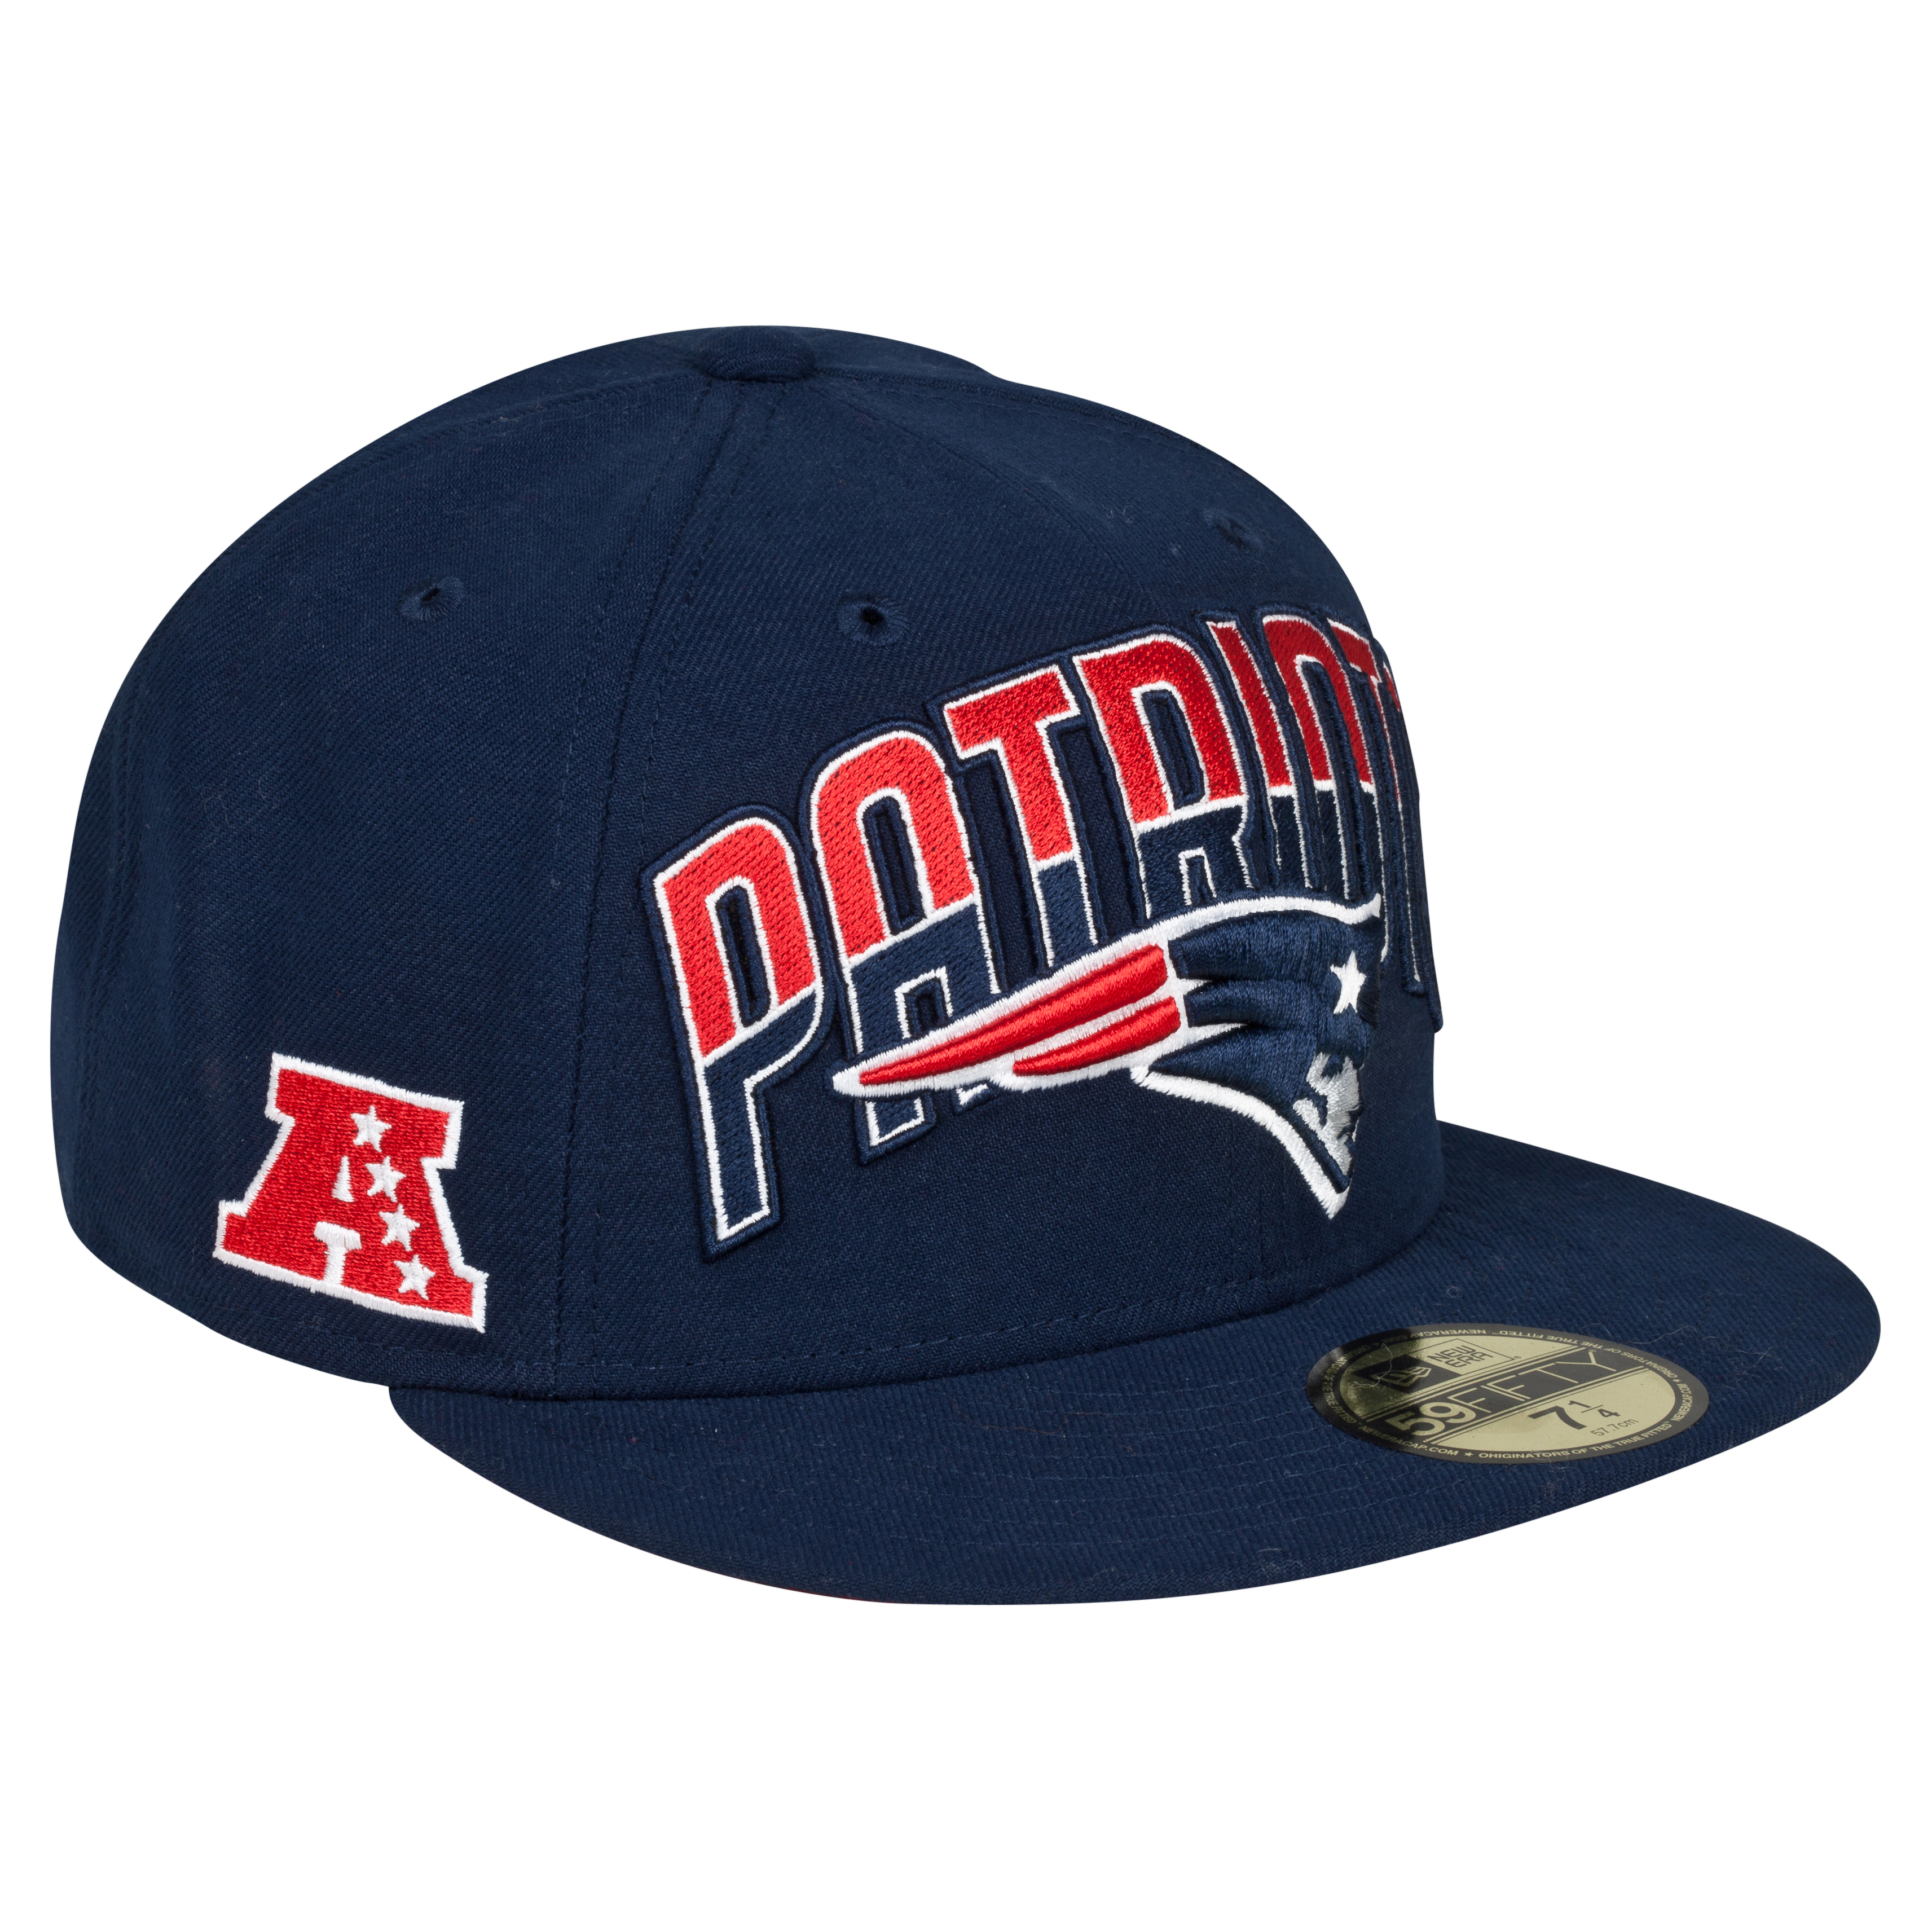 New England Patriots NFL Draft 59FIFTY Cap